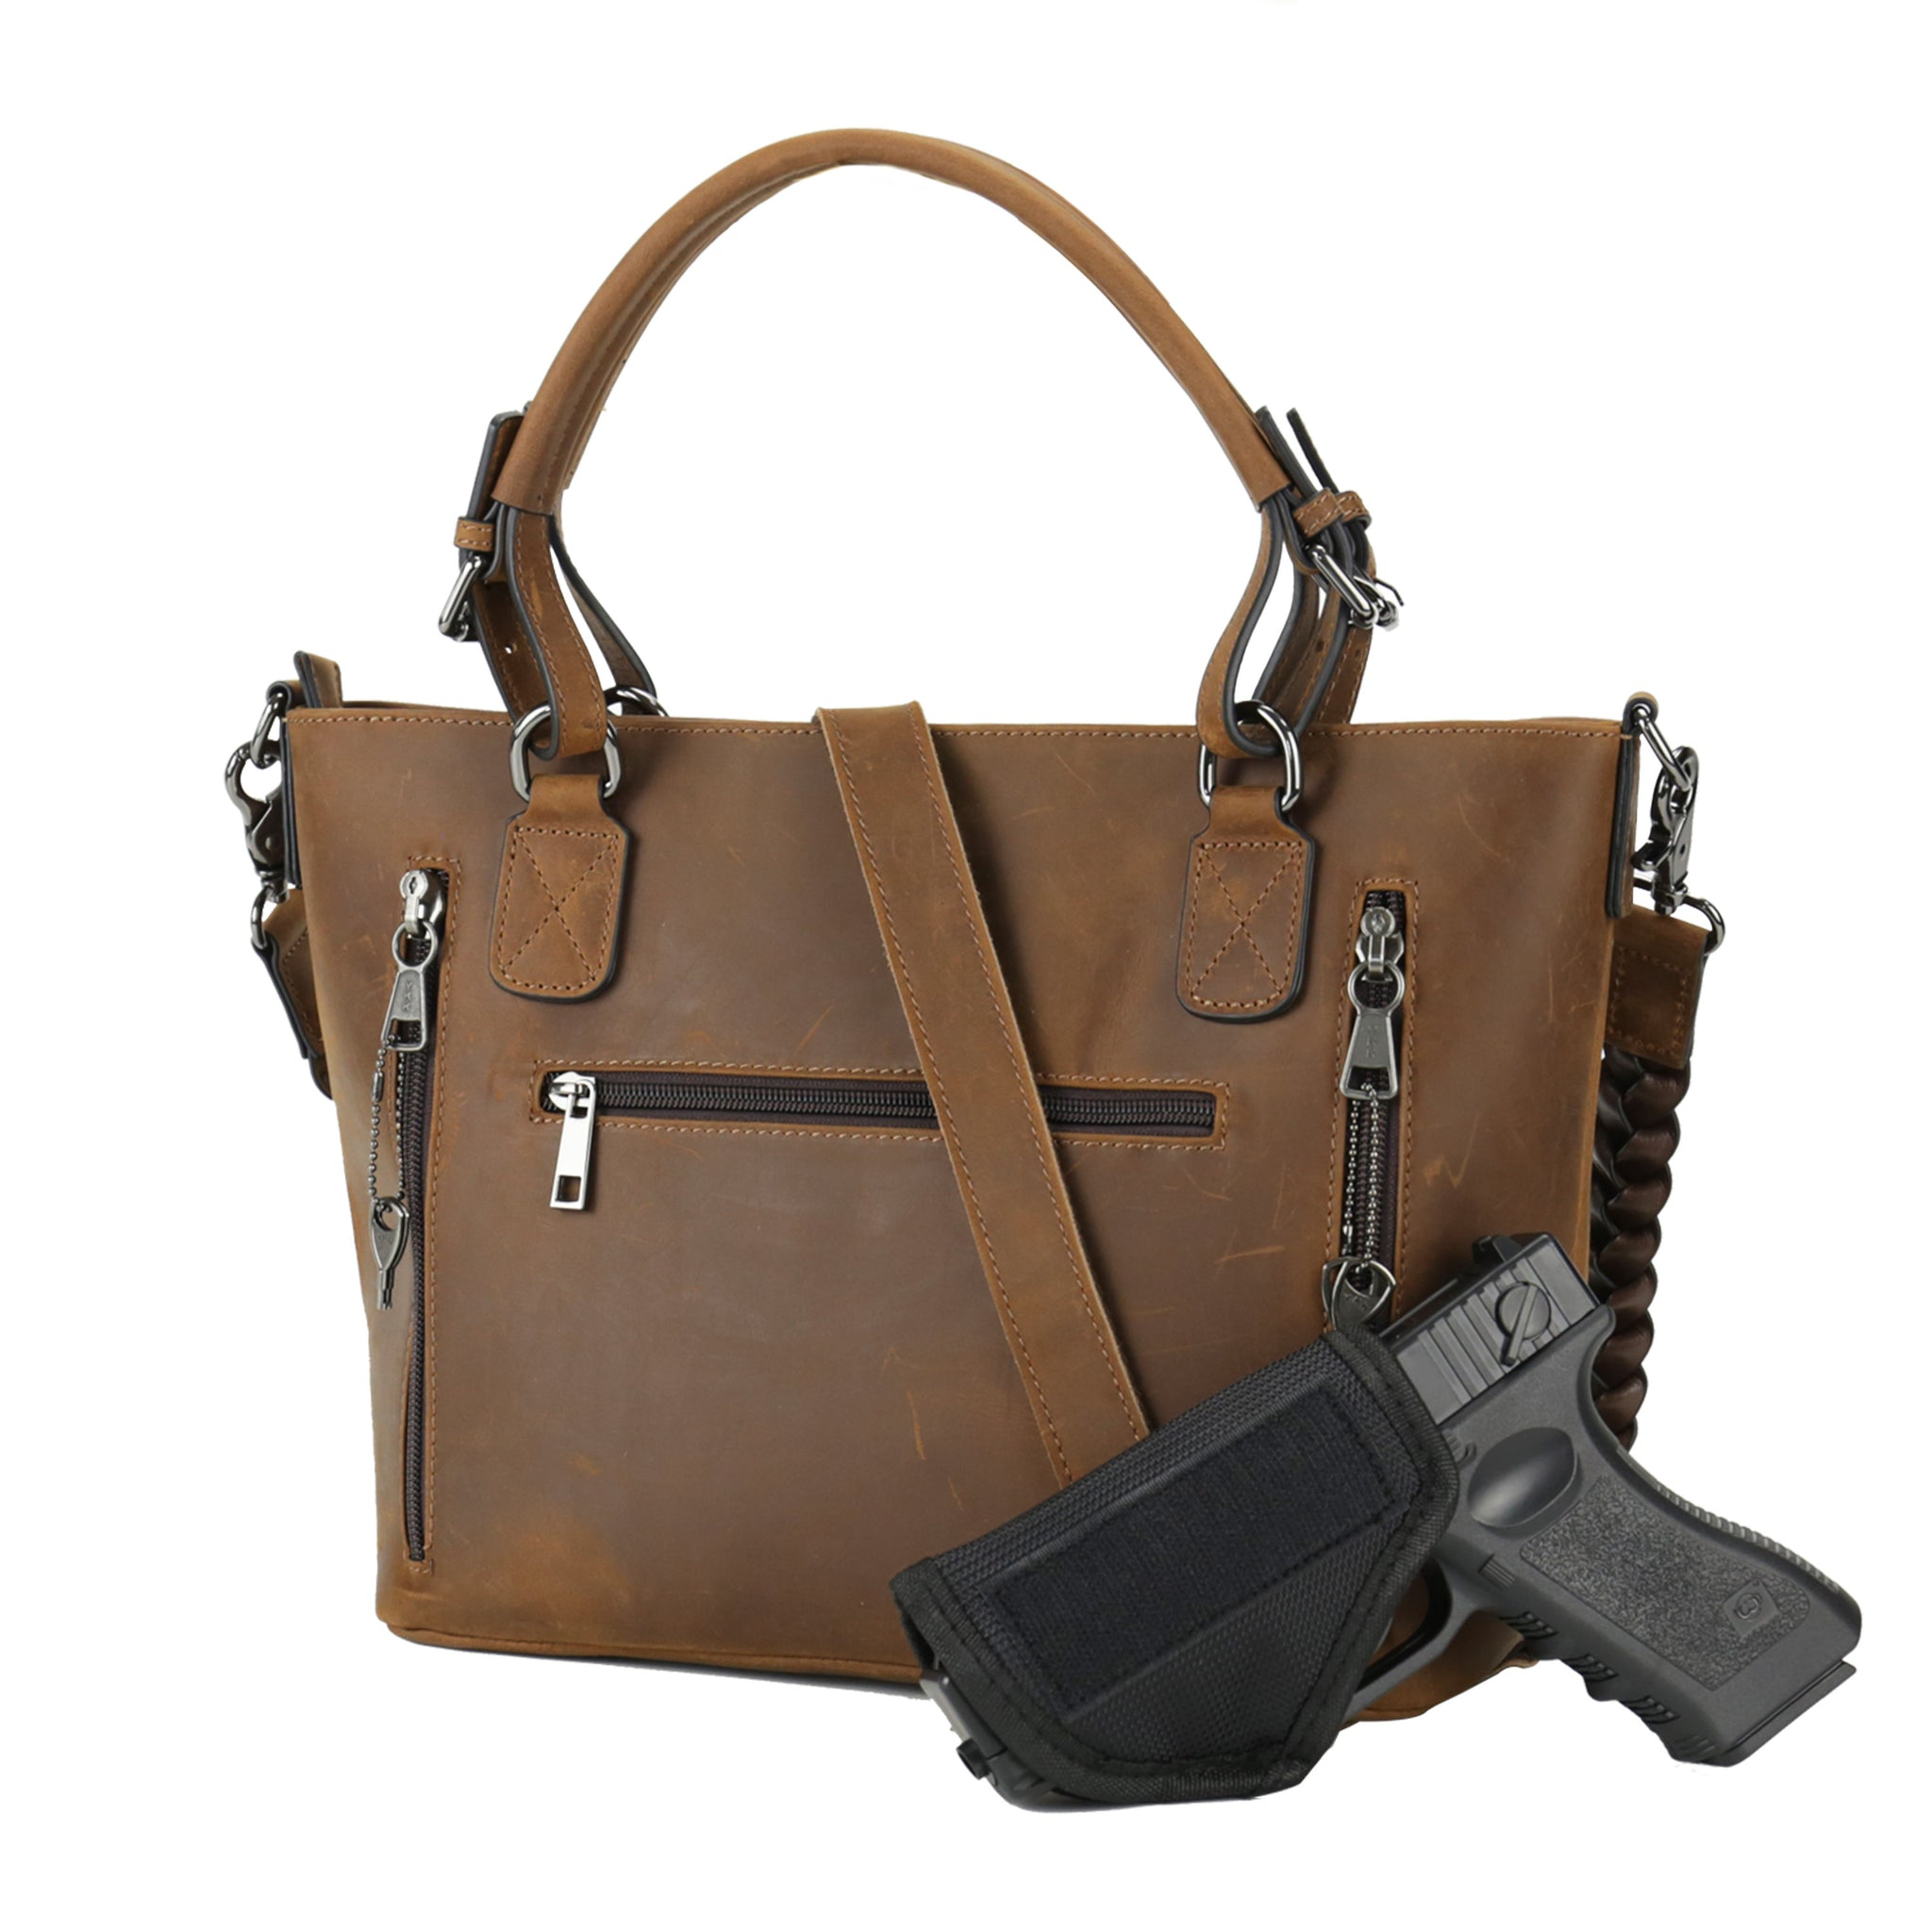 Concealed Carry Bailey Leather Satchel